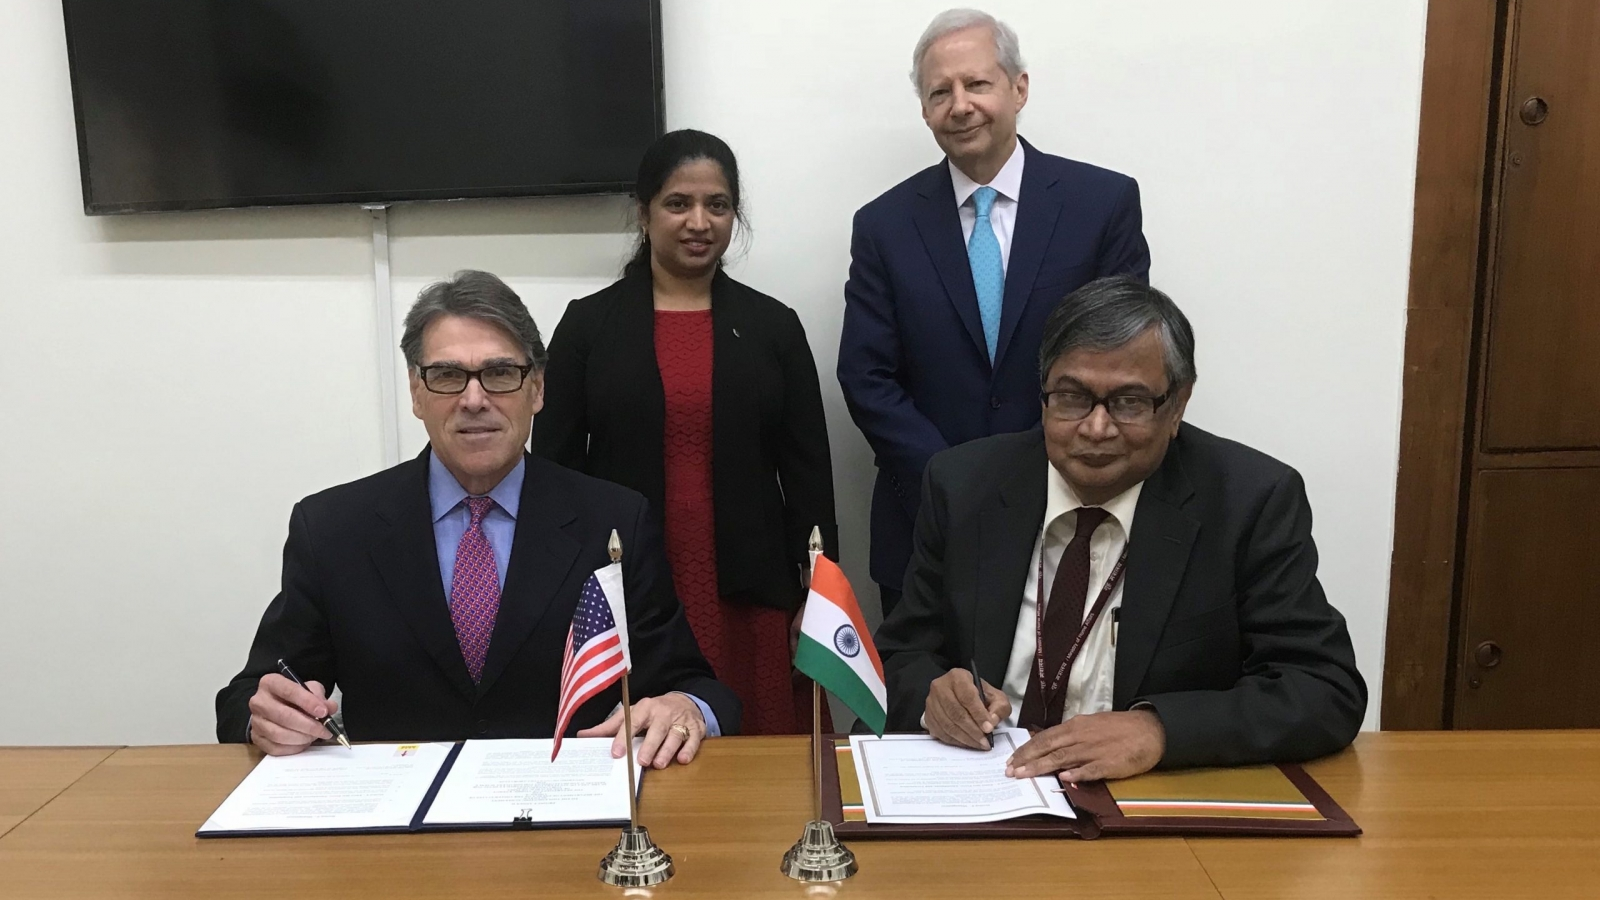 U.S. Energy Secretary Rick Perry and Indian Atomic Energy Secretary Sekhar Fasu sign agreement.